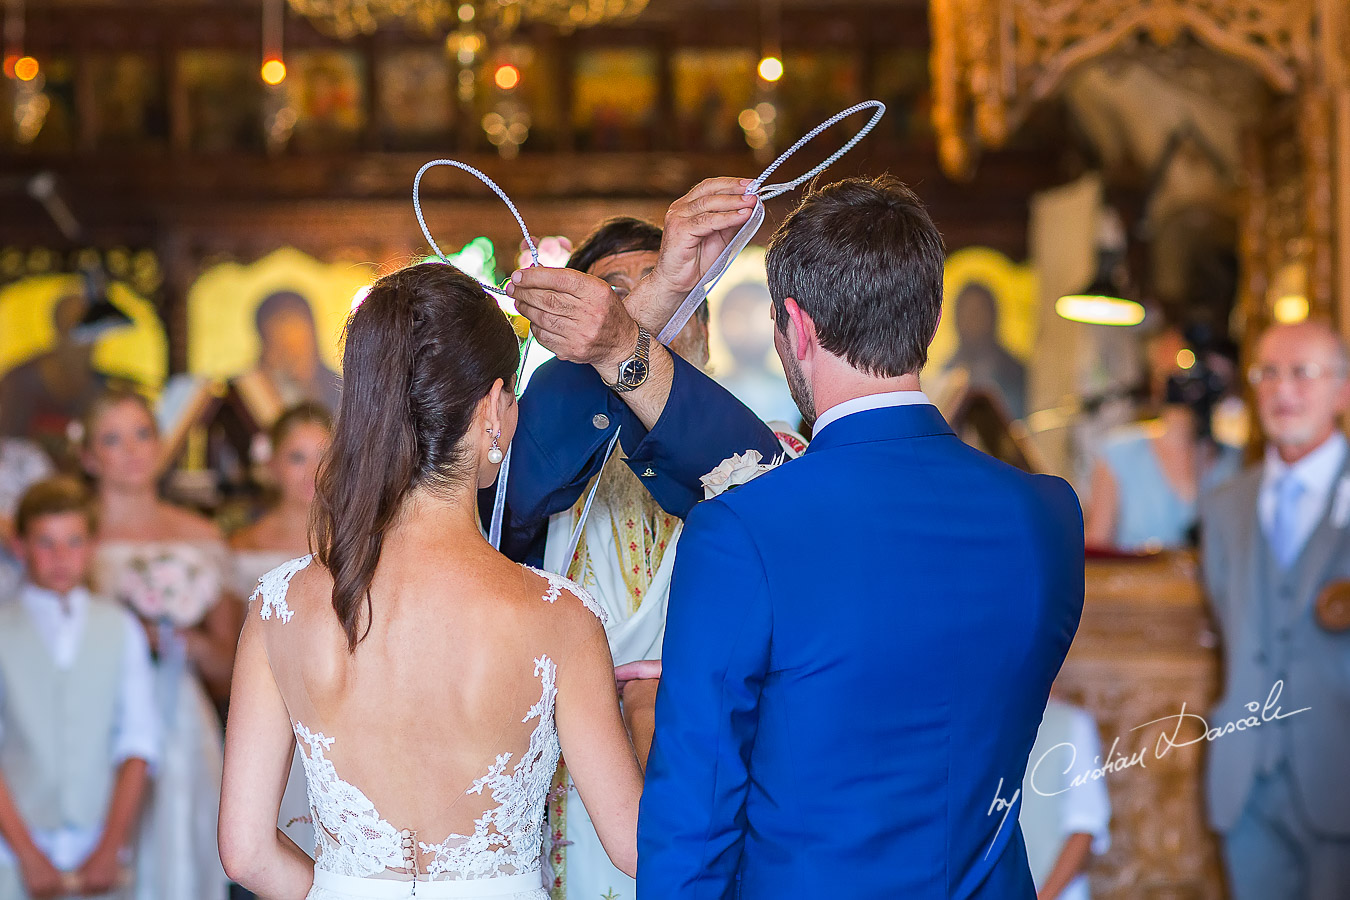 Emotional moment captured at a beautiful wedding at Agia Paraskevi in Paphos, Cyprus.